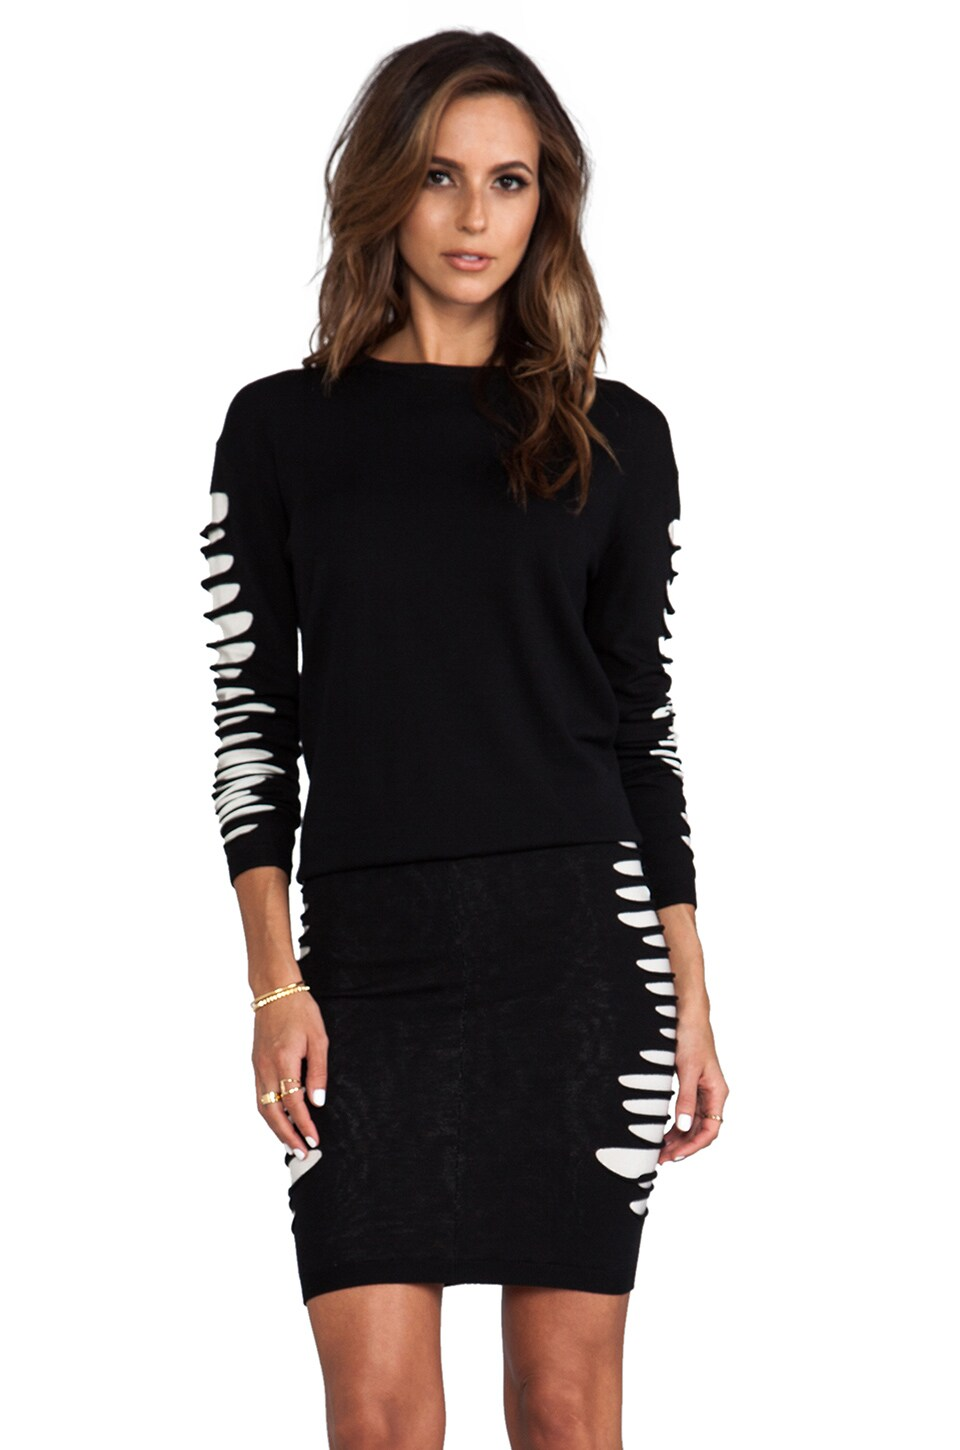 McQ Alexander McQueen Slashed Knit Sweater in Velvet Black